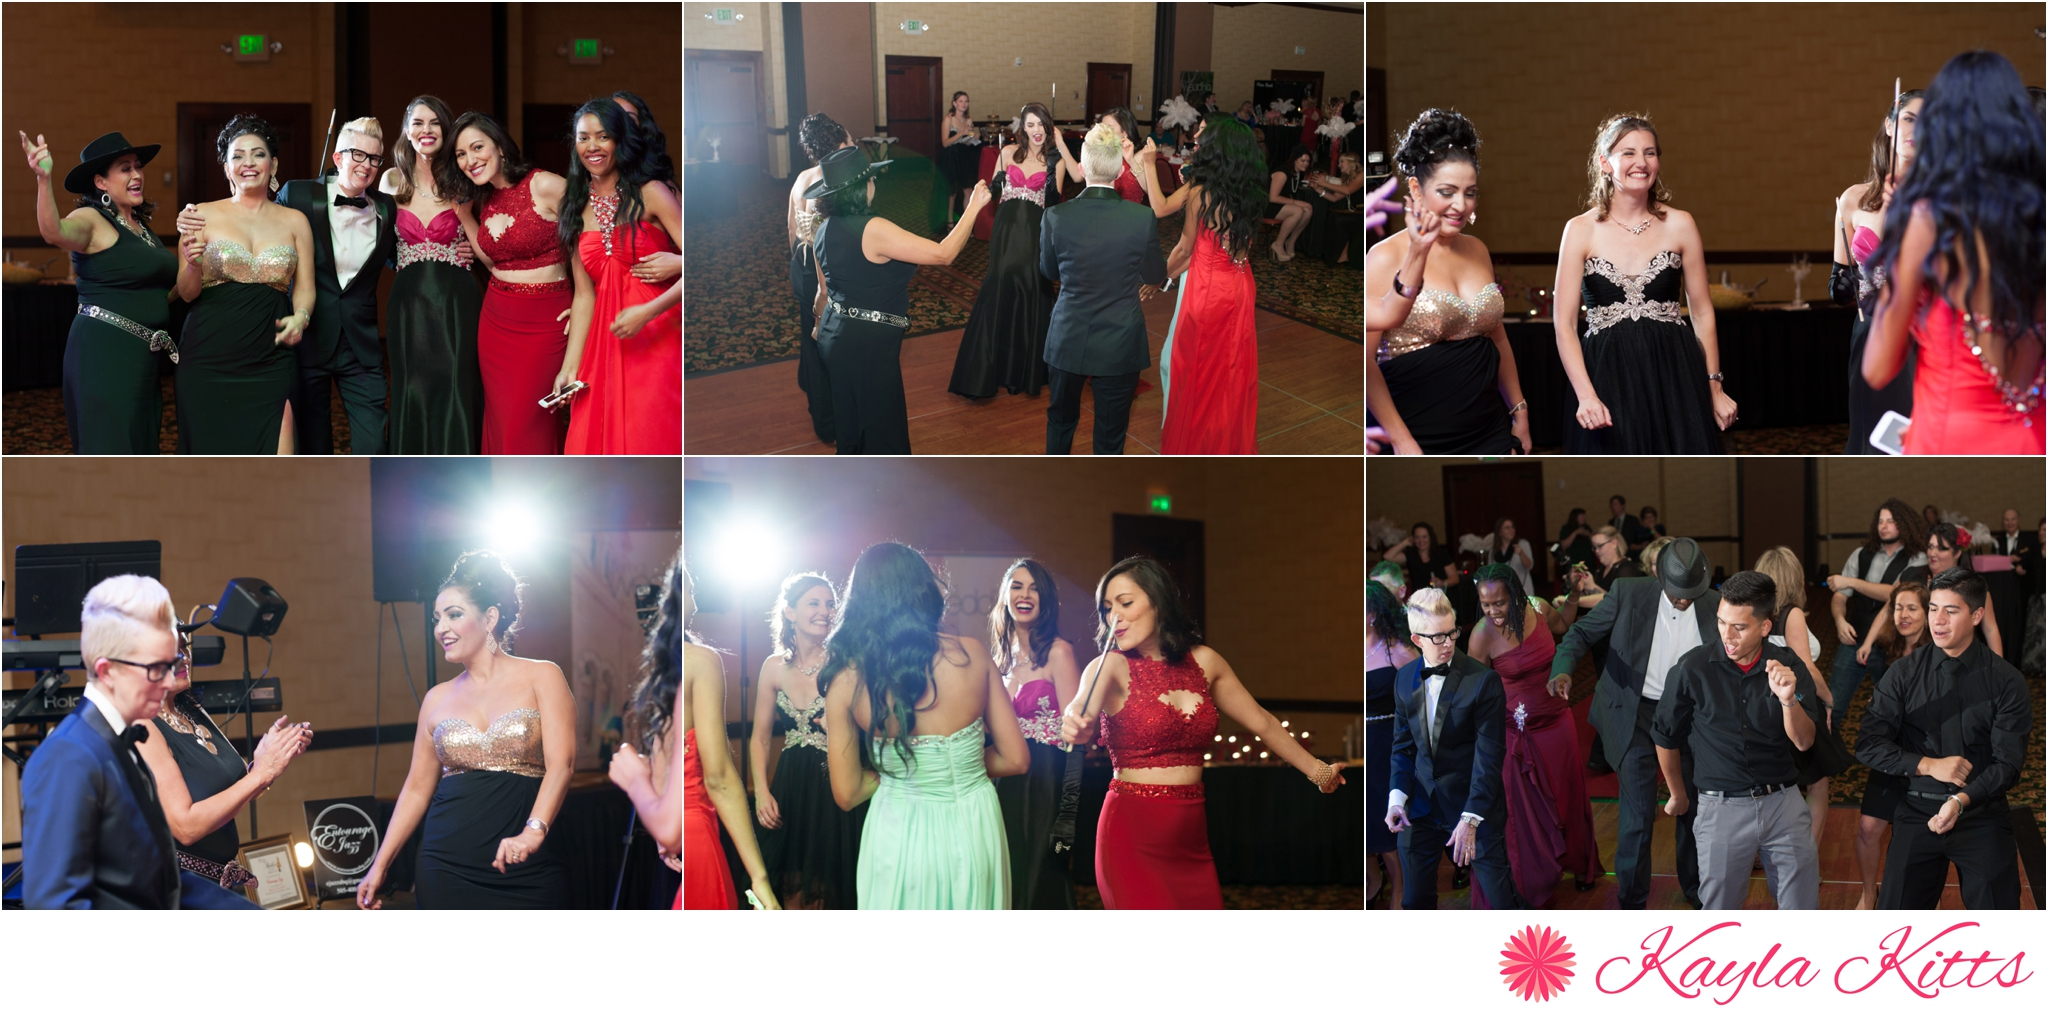 kayla kitts photography - perfect wedding guide - client appreciation party - albuqueruqe marriott_0015.jpg